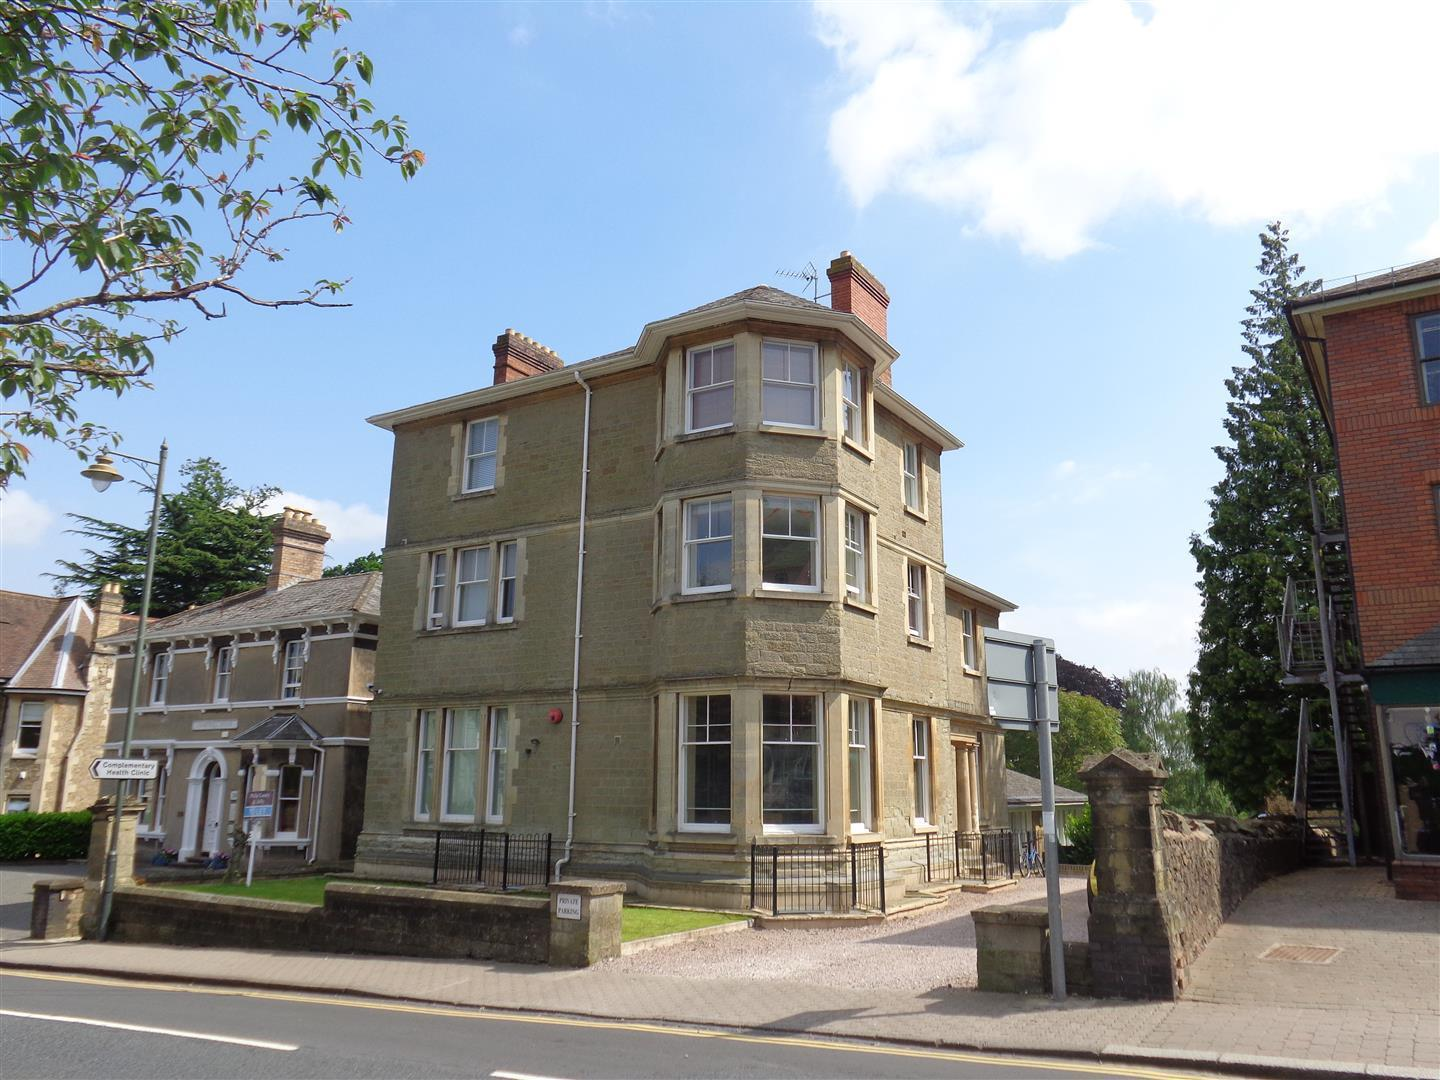 Apartment 8, 36 Church Street, Great Malvern